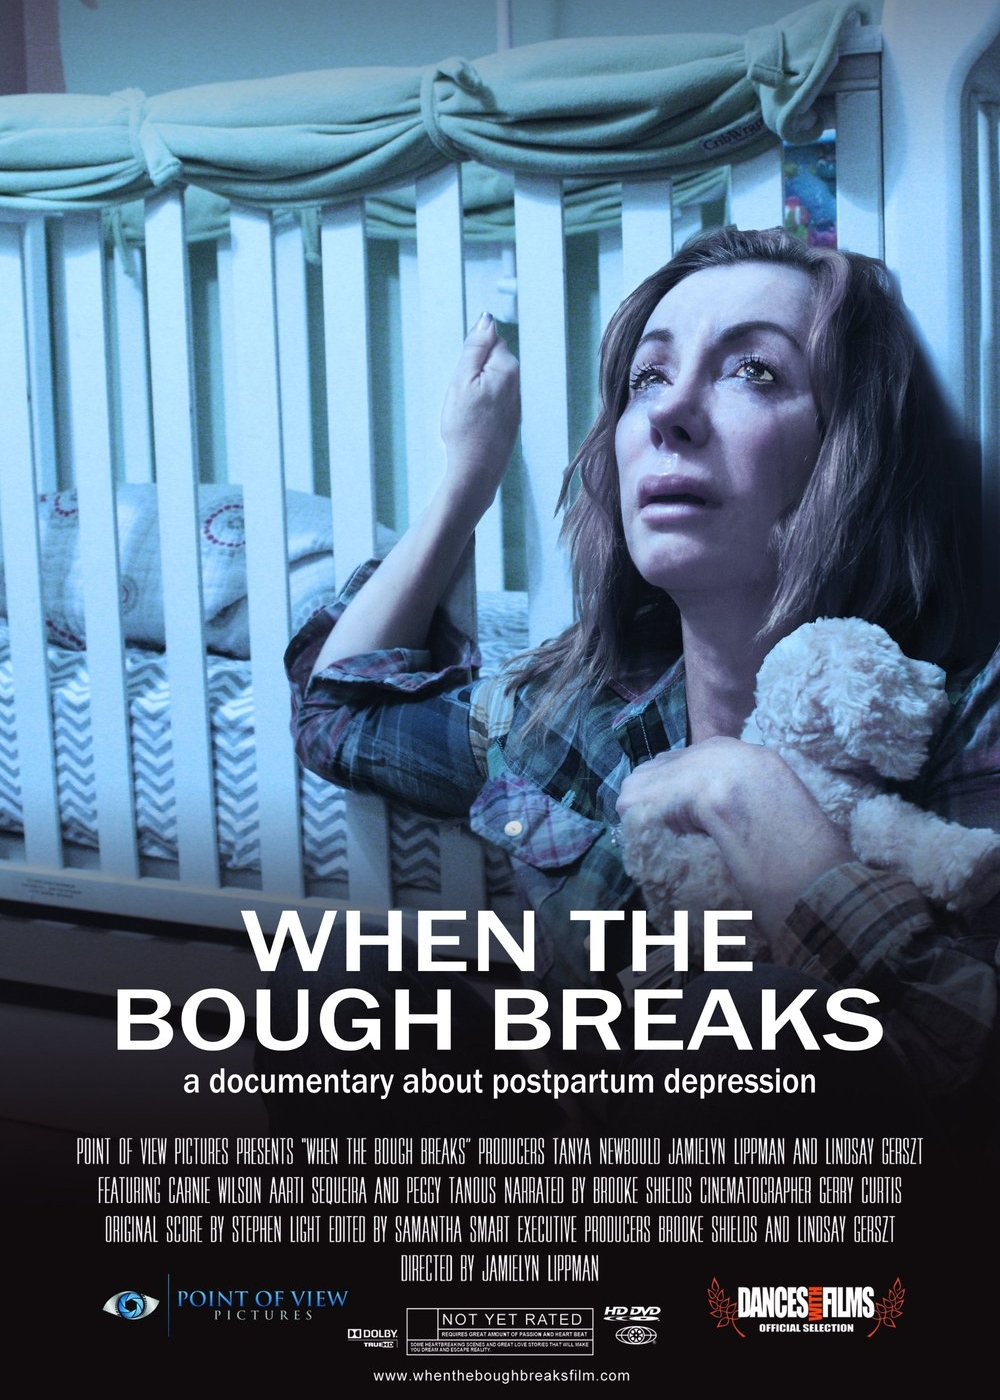 When the Bough Breaks: a documentary about postpartum depression - 2017, USA, 93 min, in EnglishWhen The Bough Breaks is a feature length documentary about postpartum depression and postpartum psychosis. Narrated and Executive Produced by Brooke Shields, this groundbreaking film uncovers this very public health issue, which affects one in five new mothers after childbirth.